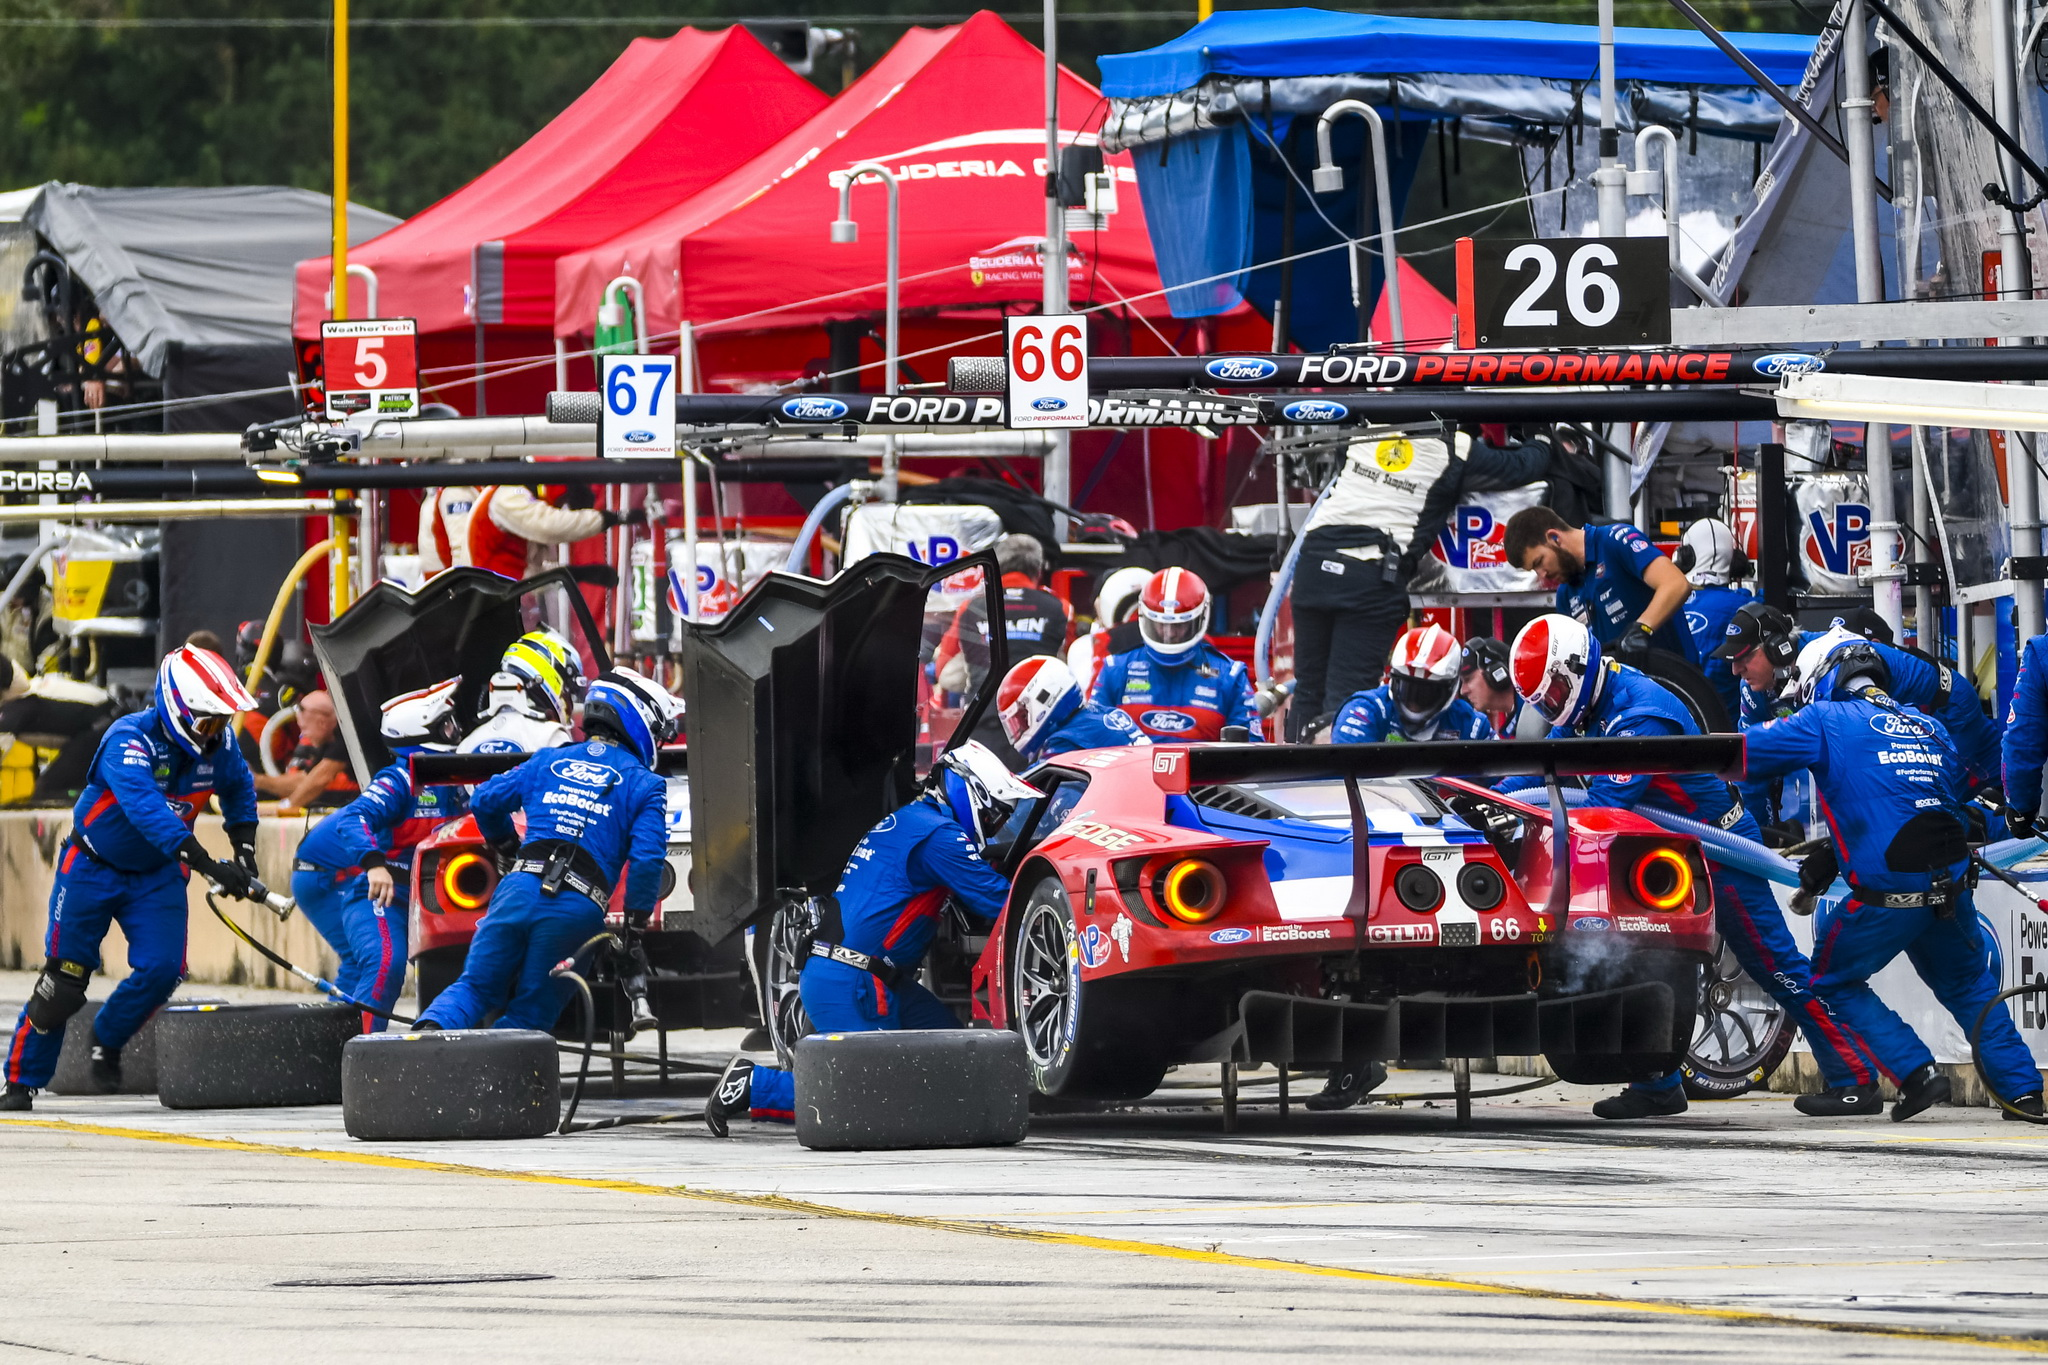 Ford GT's Fight for Podium, Manufacturer's Championship Comes to Dramatic Conclusion At Petit Le Mans